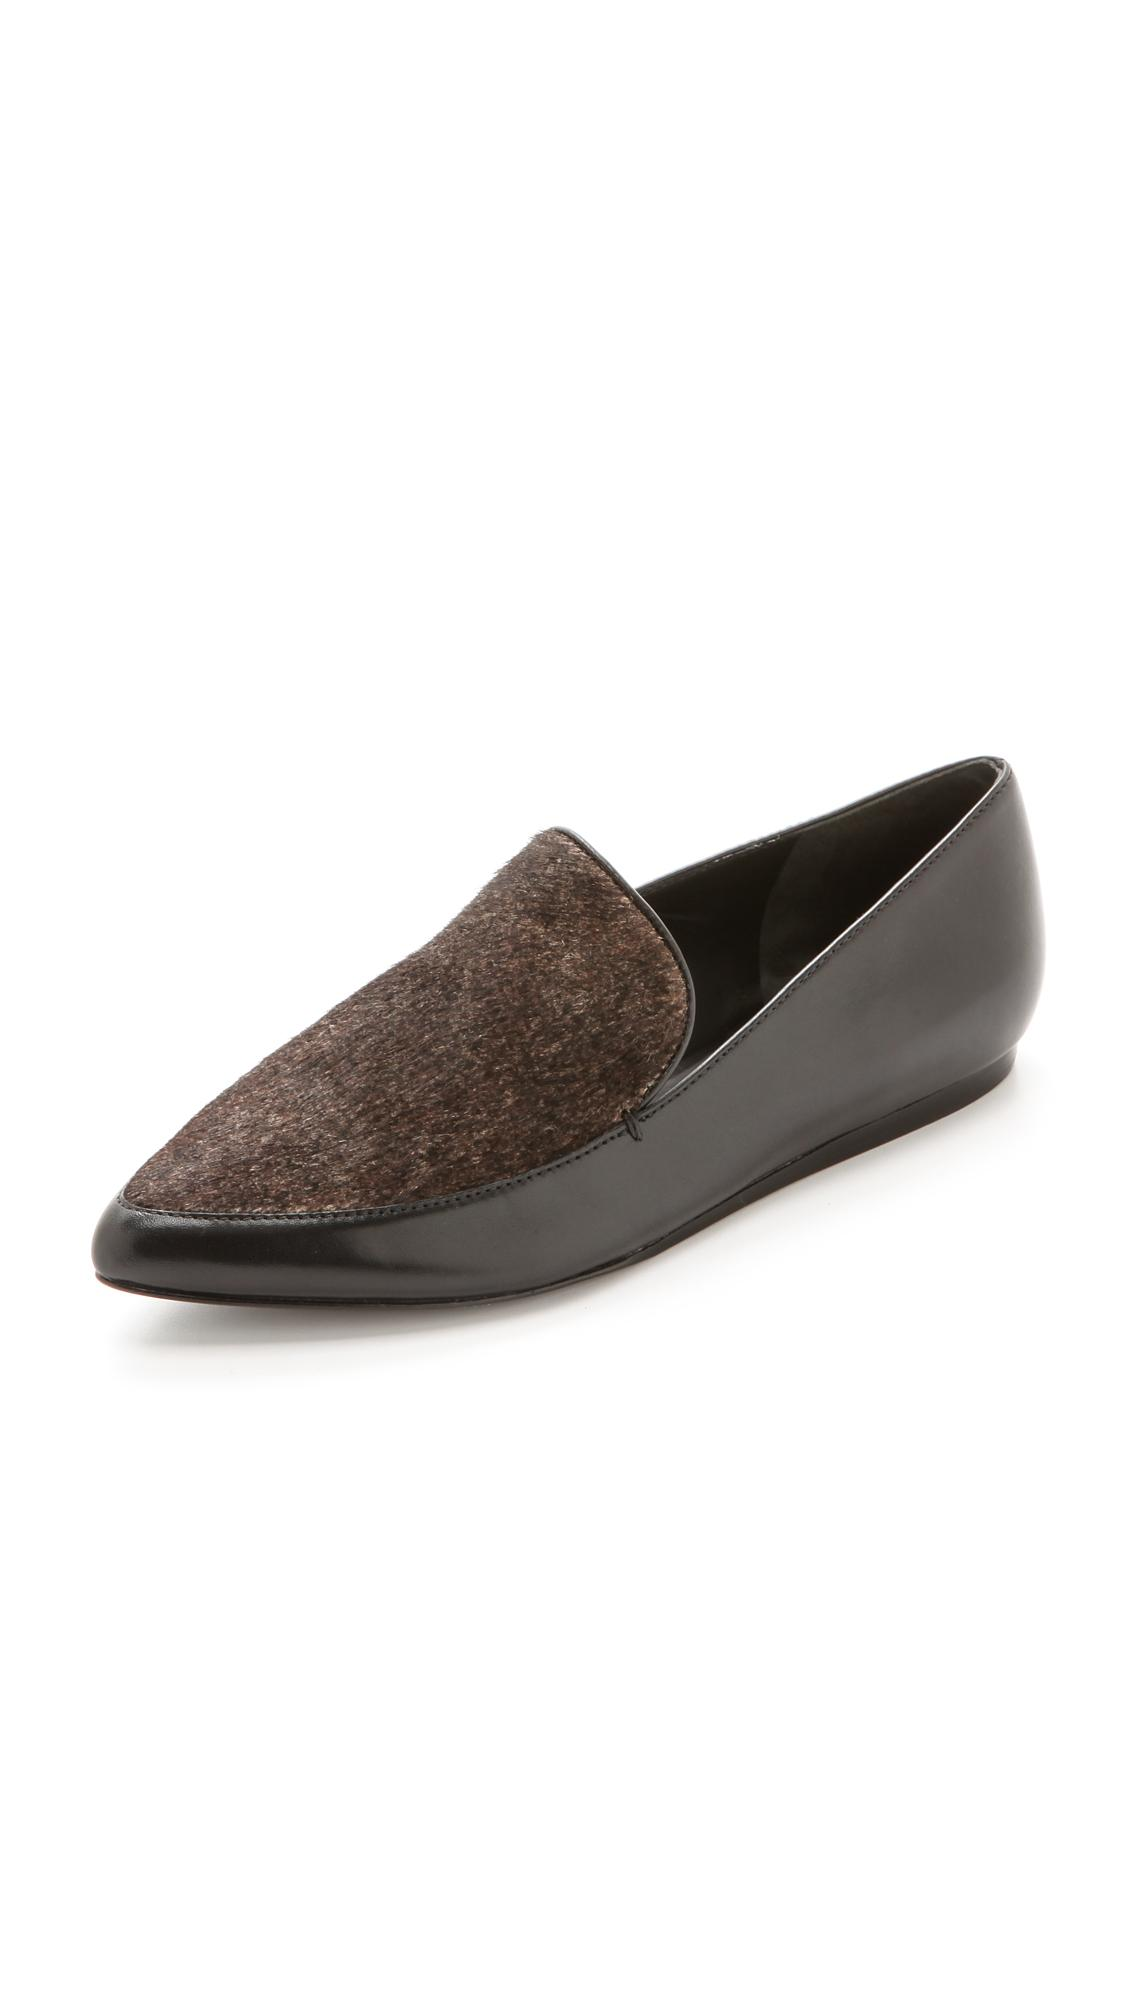 Vince Nikita Calf Hair & Leather Point-toe Loafers In Black/white/black